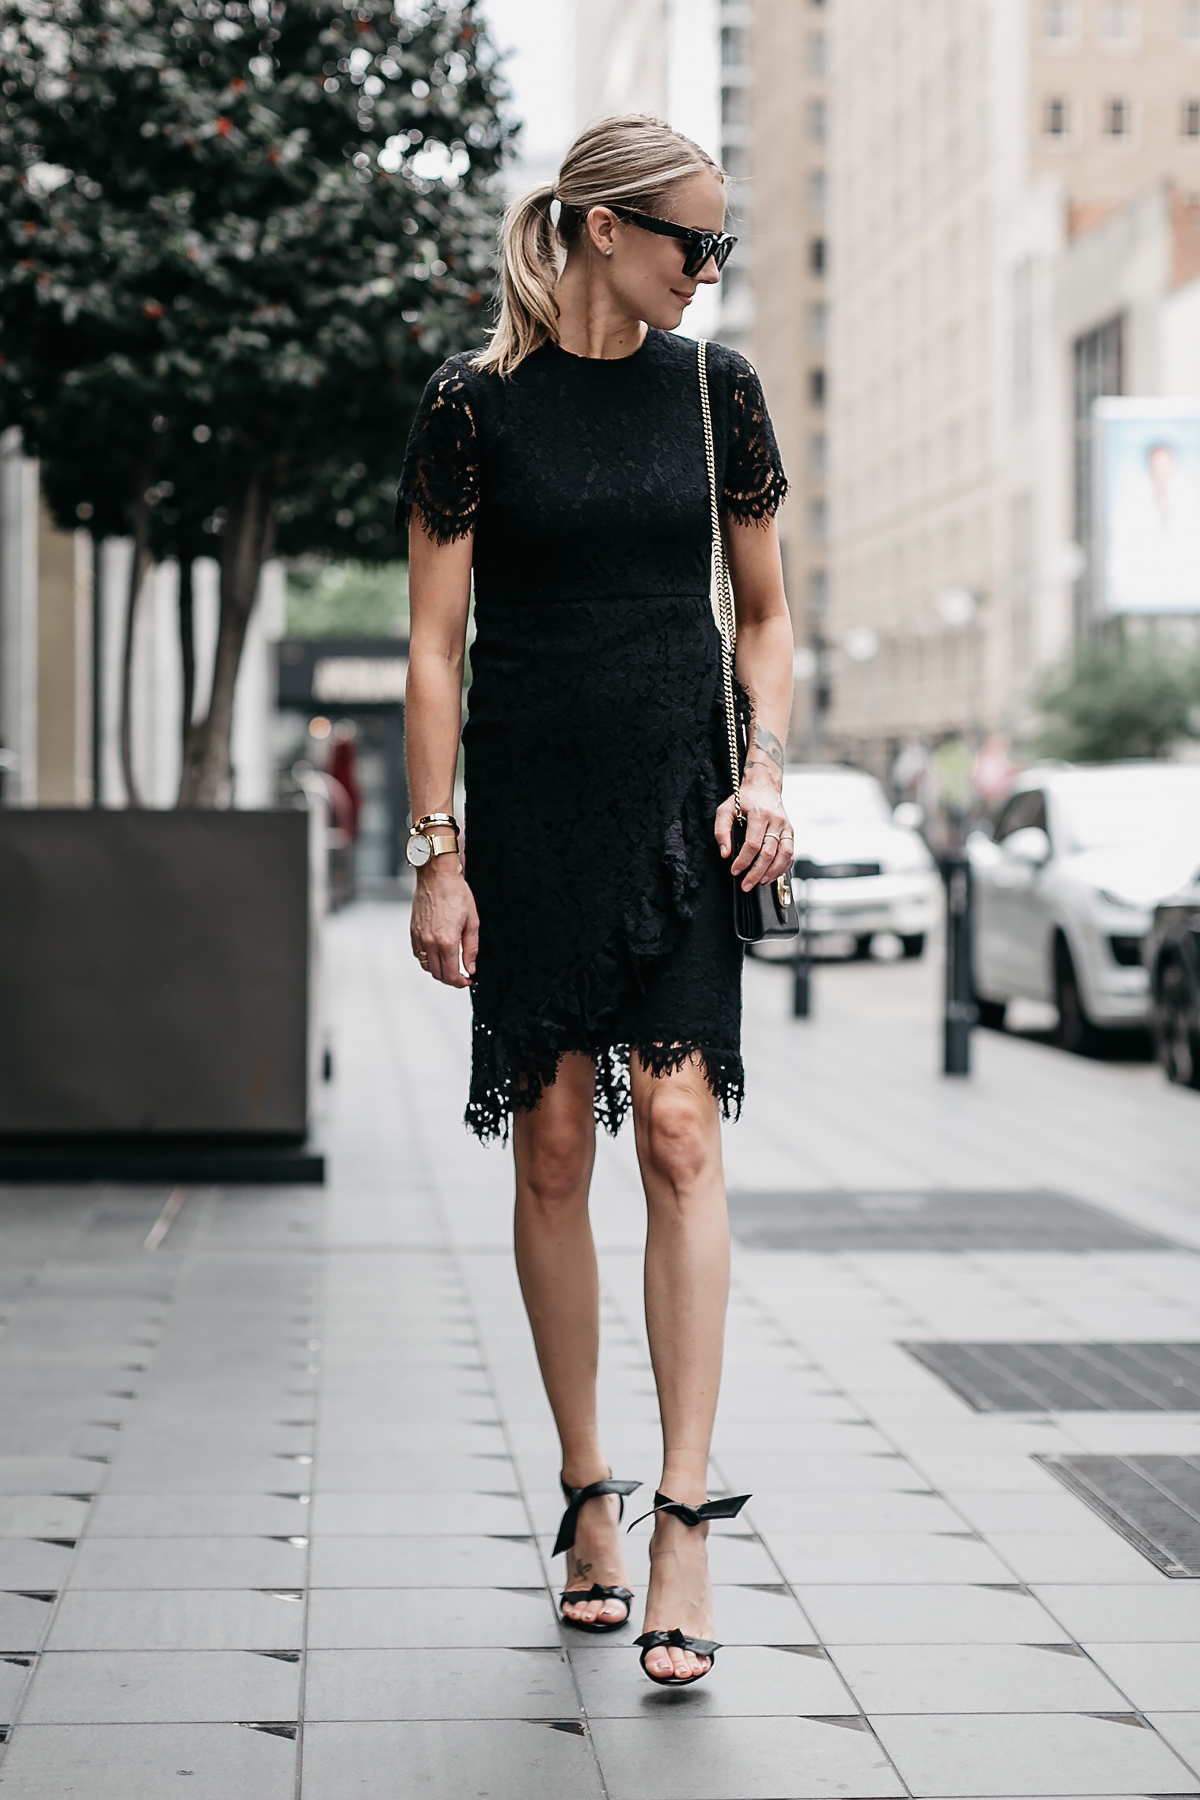 Blonde Woman Wearing Black Lace Dress Black Tie Bow Heeled Sandals Black Gucci Marmont Handbag Fashion Jackson Dallas Blogger Fashion Blogger Street Style